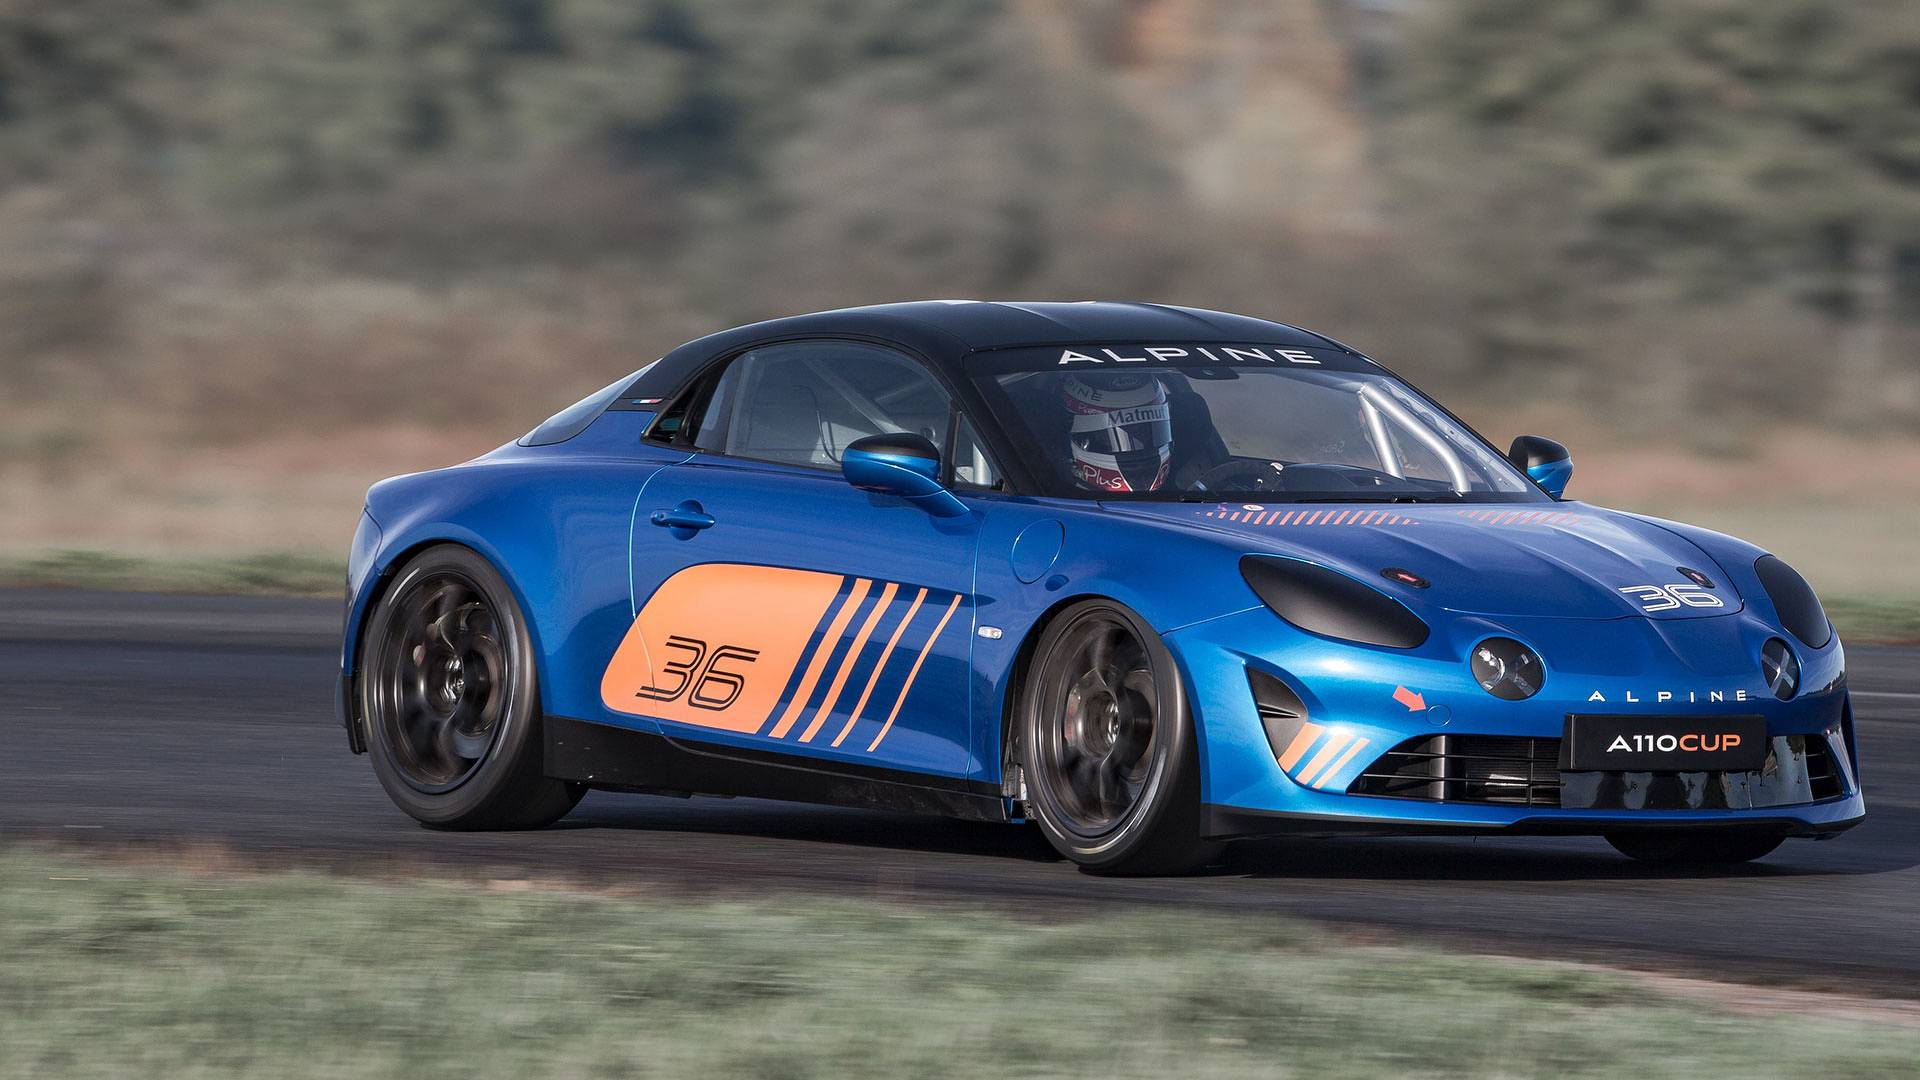 renault reveals alpine a110 cup race car for one make series autoevolution. Black Bedroom Furniture Sets. Home Design Ideas